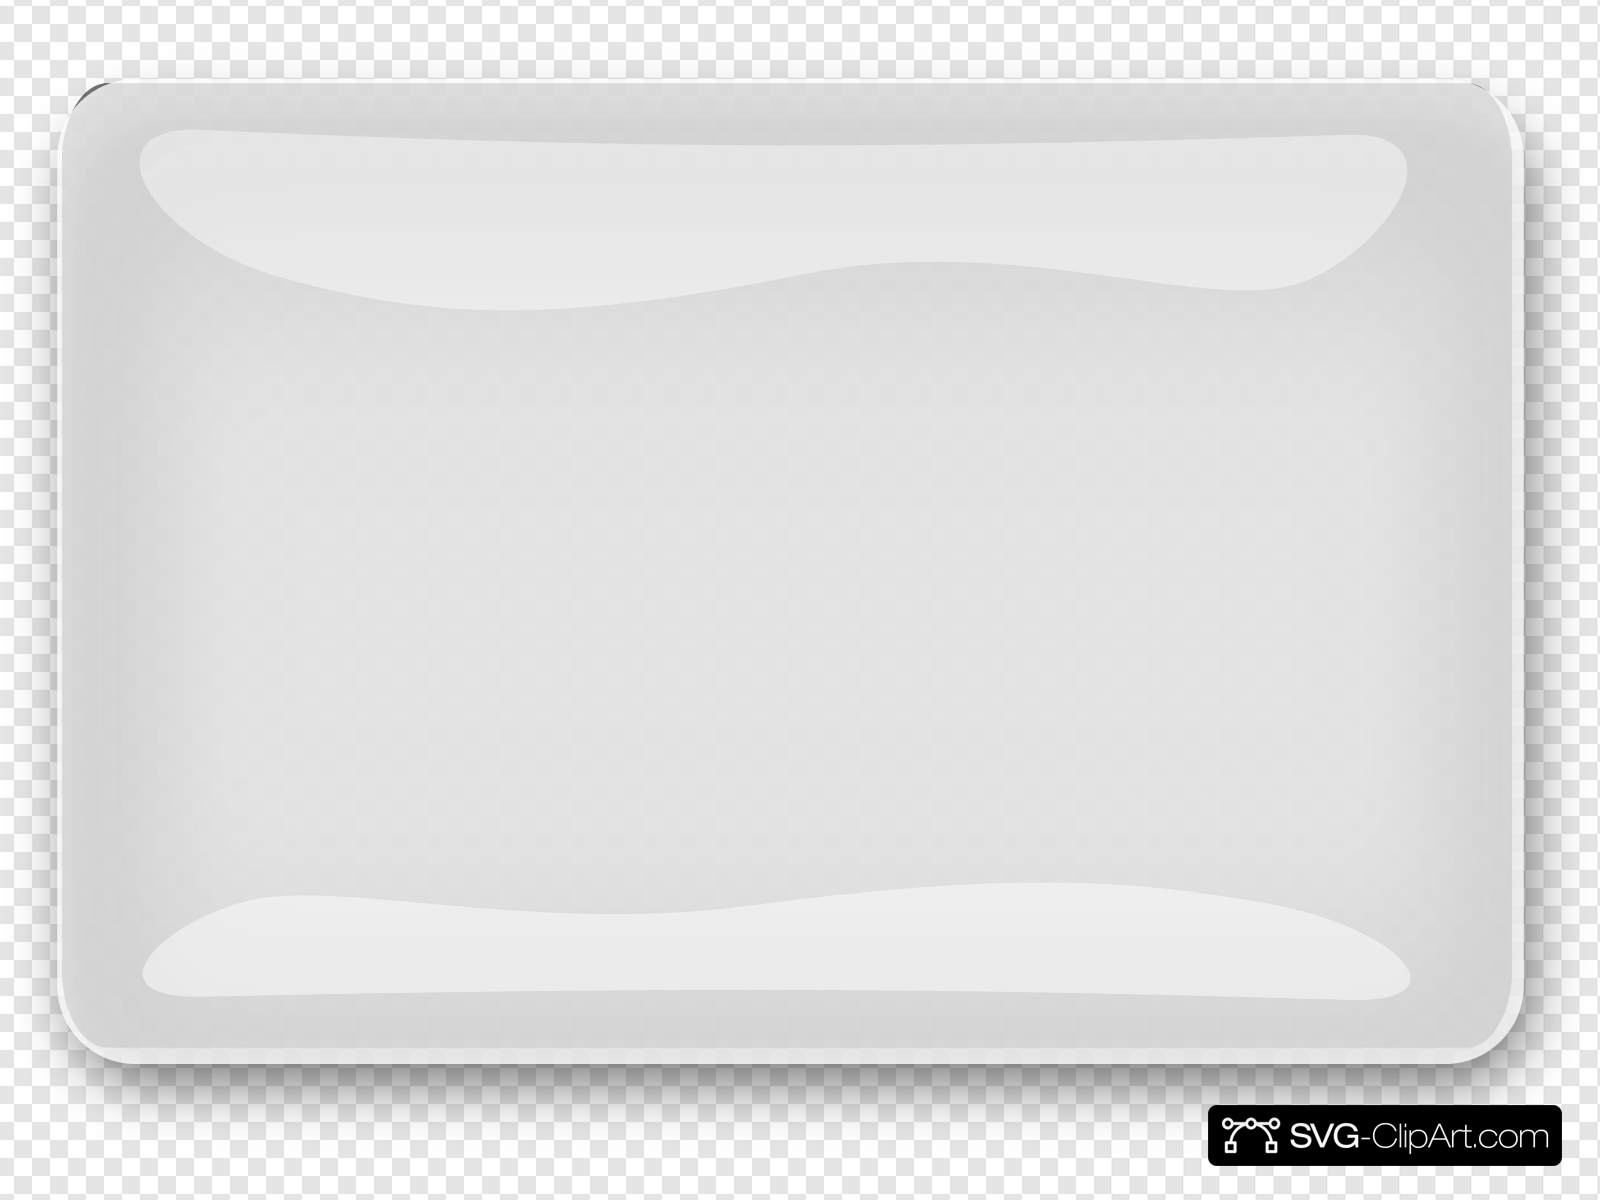 Whitey Glossy Rectangle Button Clip art, Icon and SVG.